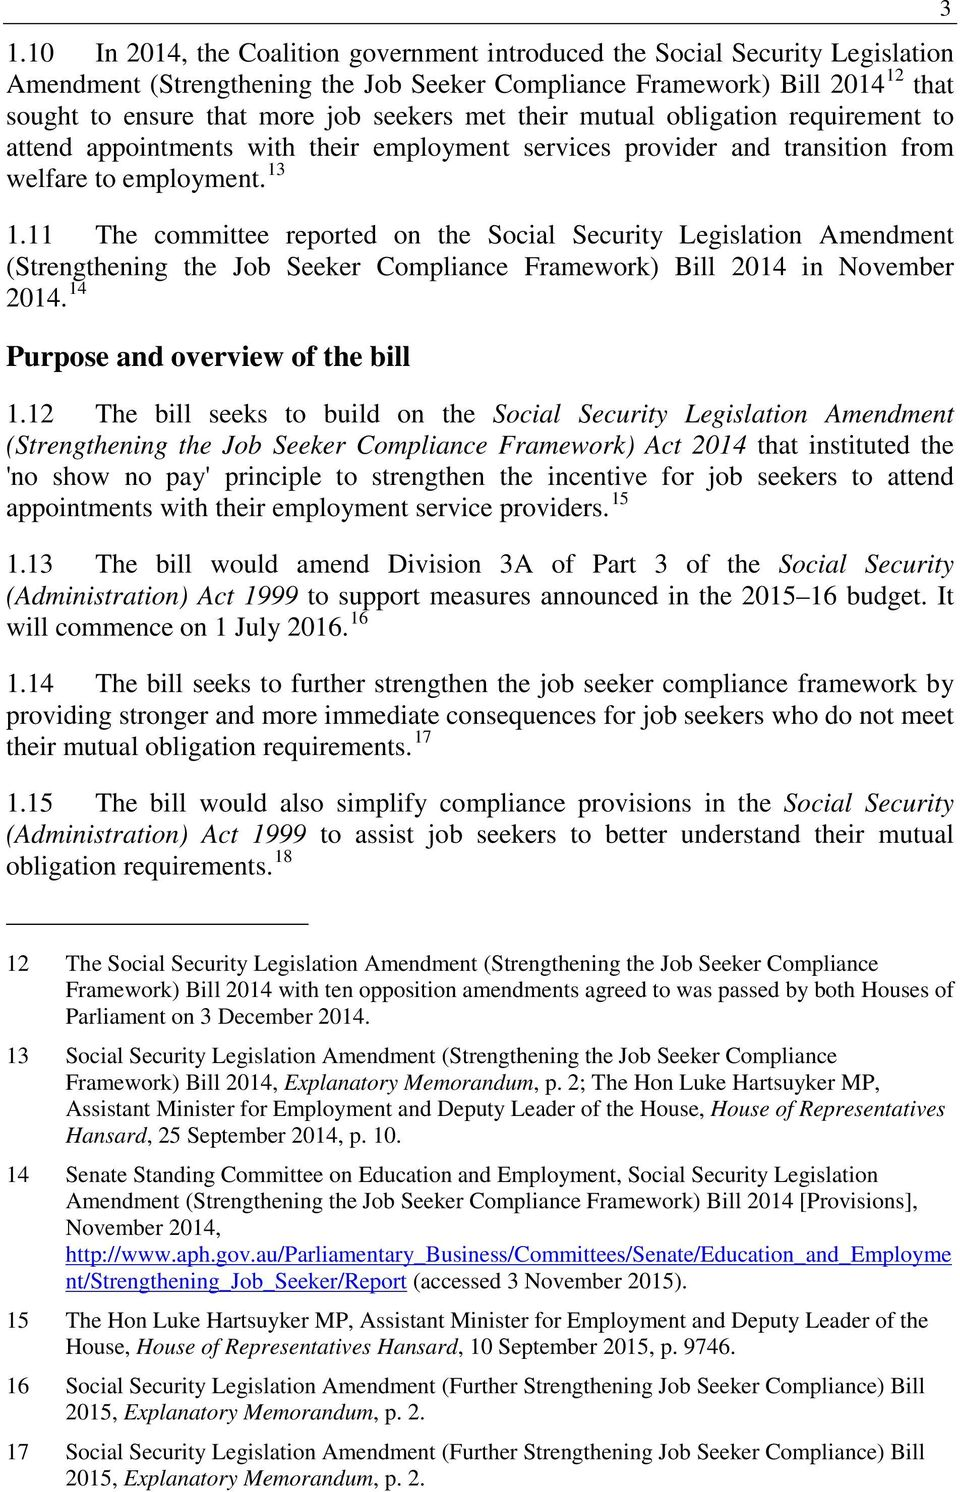 11 The committee reported on the Social Security Legislation Amendment (Strengthening the Job Seeker Compliance Framework) Bill 2014 in November 2014. 14 Purpose and overview of the bill 1.